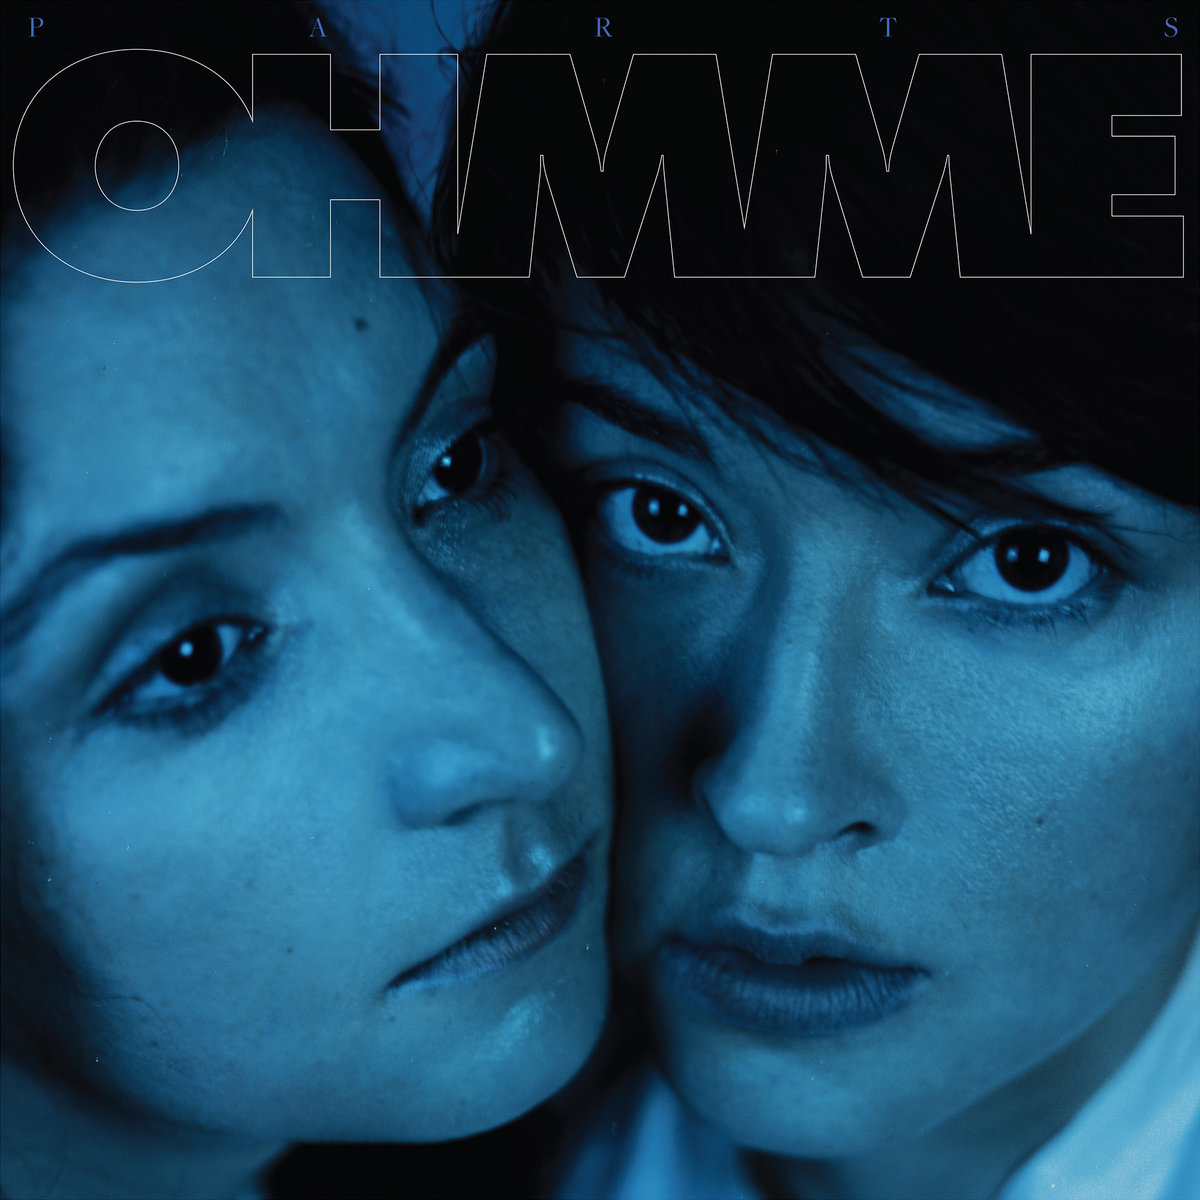 Sima Cunningham and Macie Stewart on the cover of their debut full-length album Parts